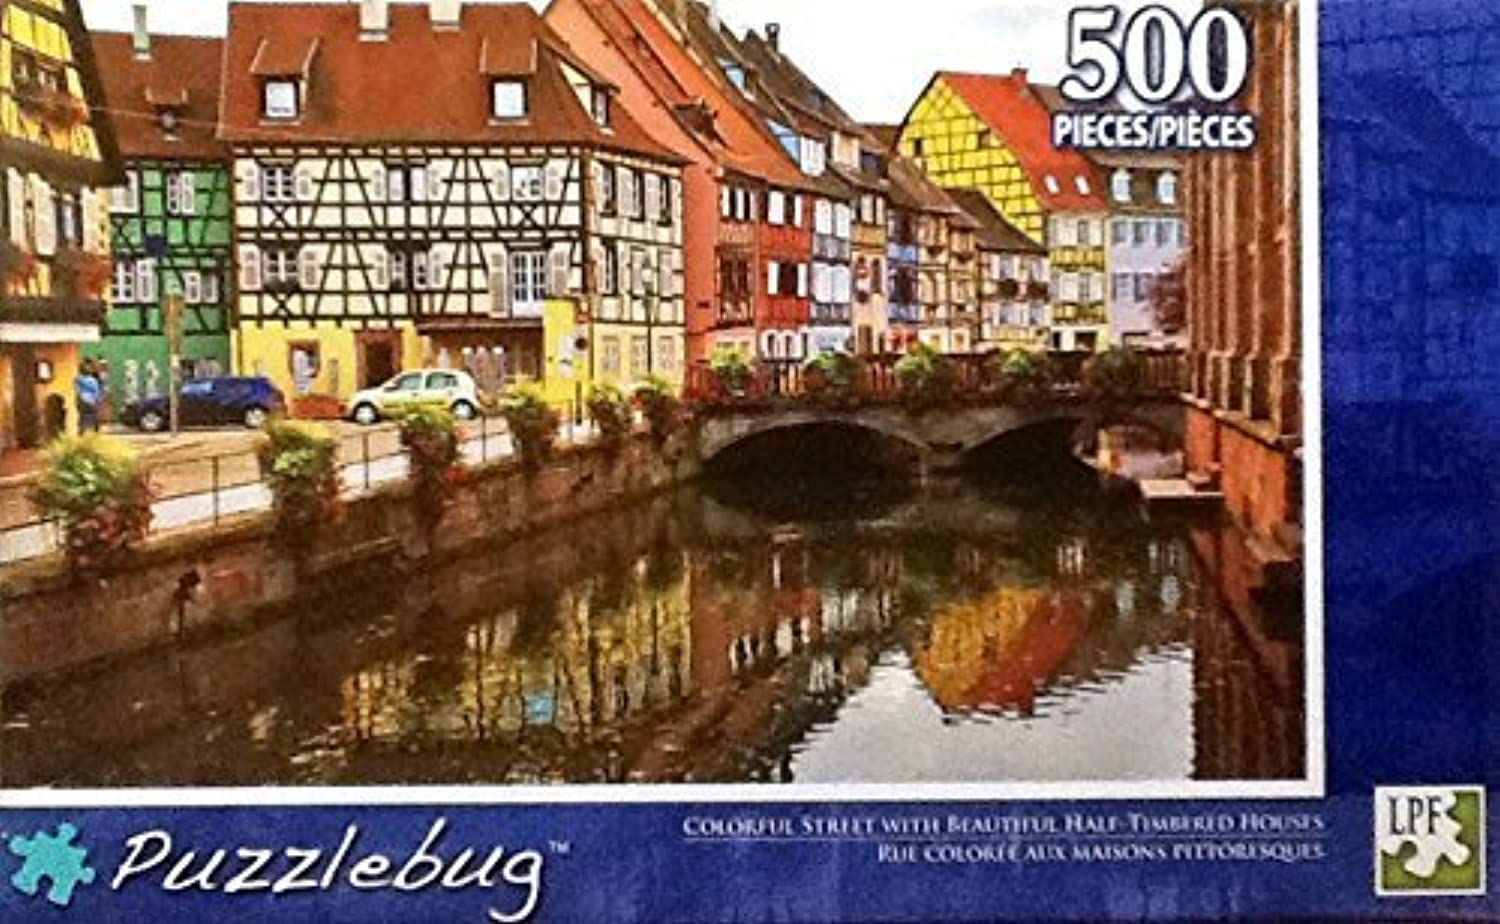 Puzzlebug 500 Piece Puzzle 18.25 X 11 - Coloreeful Street with Beautiful Half-Timberosso Houses by LPF